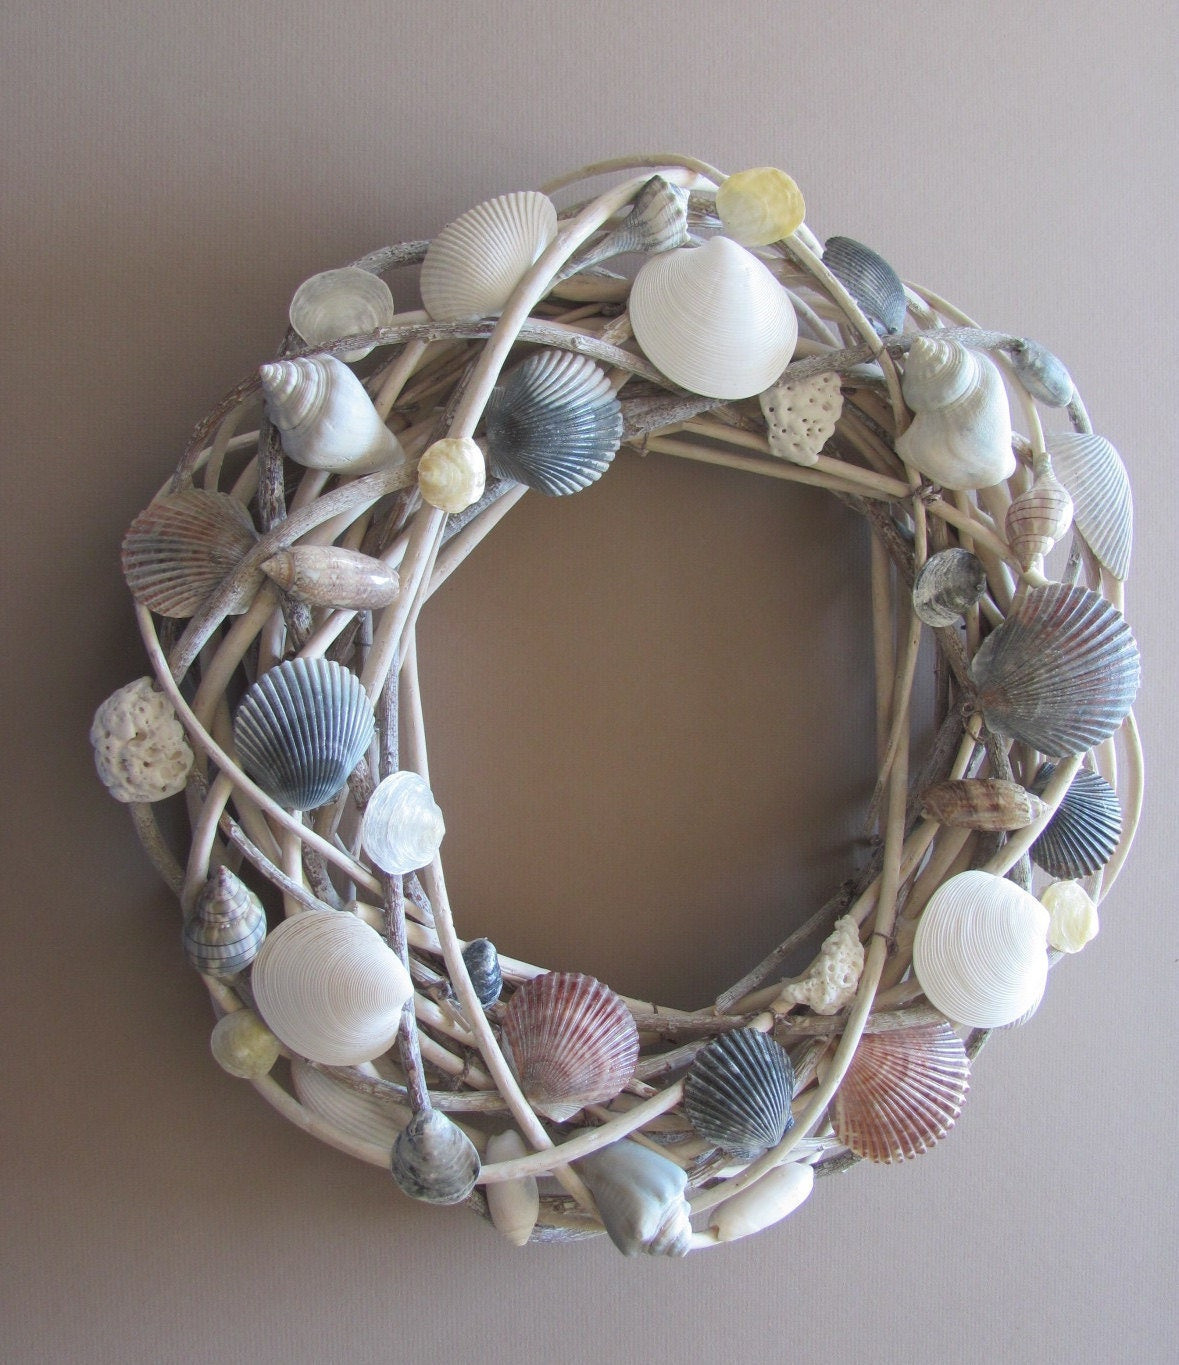 Seashell Wreath, Shell Wreath, Nautical Wreath, Coastal Wreath, Beach Decor, Beach Wedding, Beach House Decor, Shabby Chic Decor